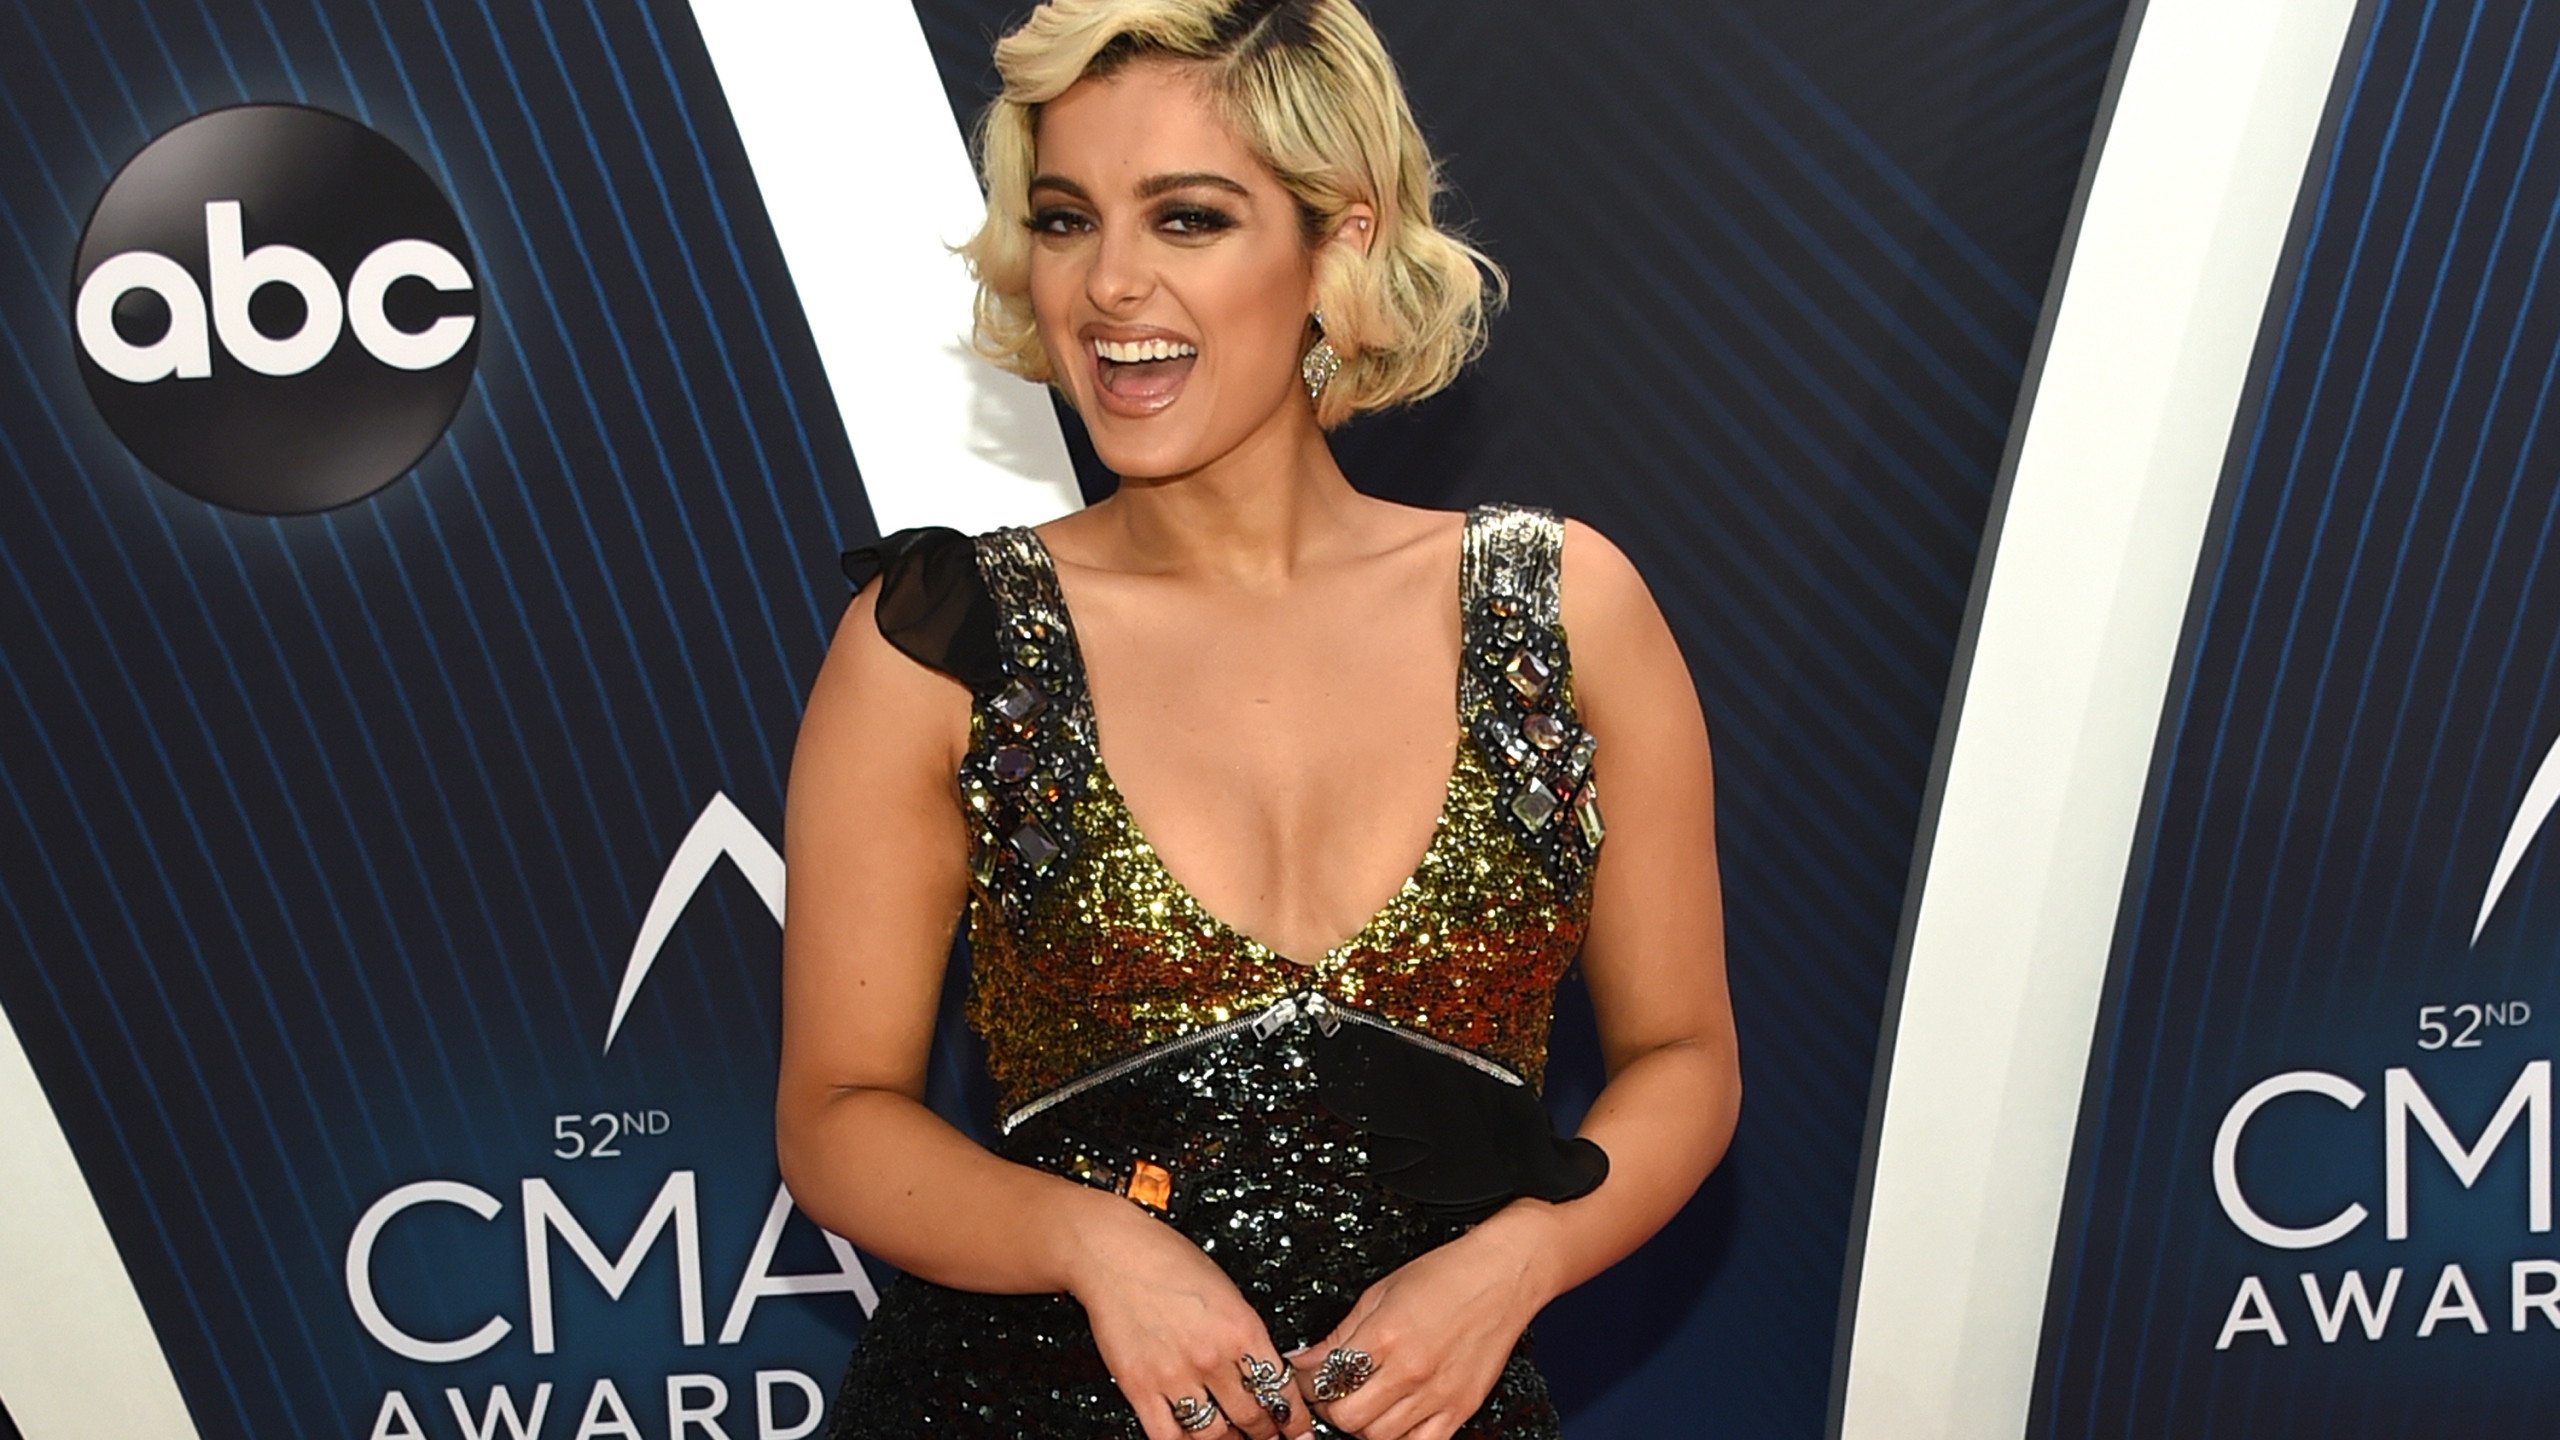 52nd_Annual_CMA_Awards_-_Arrivals_16918-159532-159532.jpg07623000